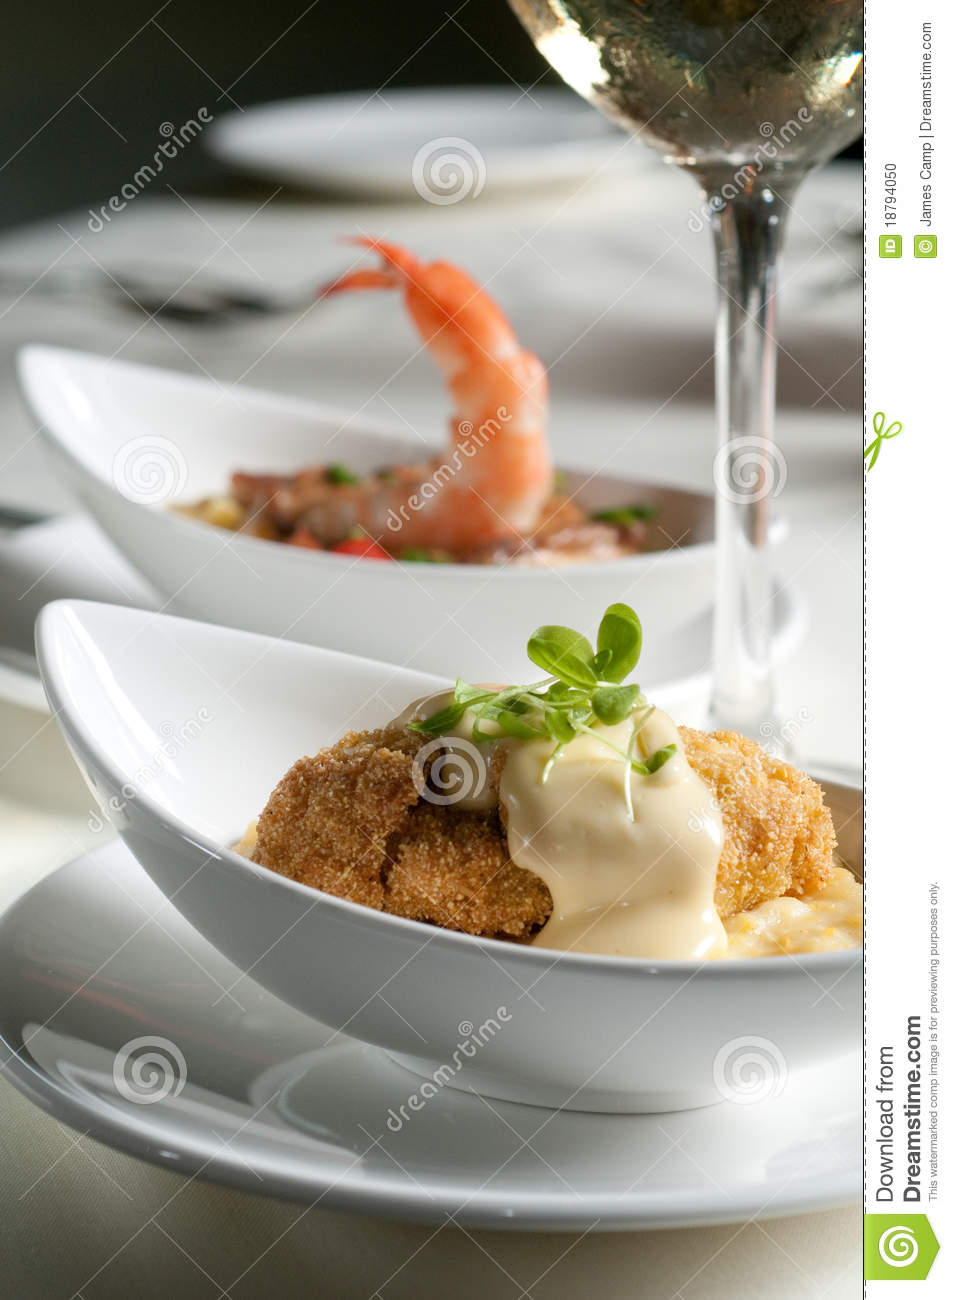 Grits two ways stock photo image 18794050 for Fried fish and shrimp